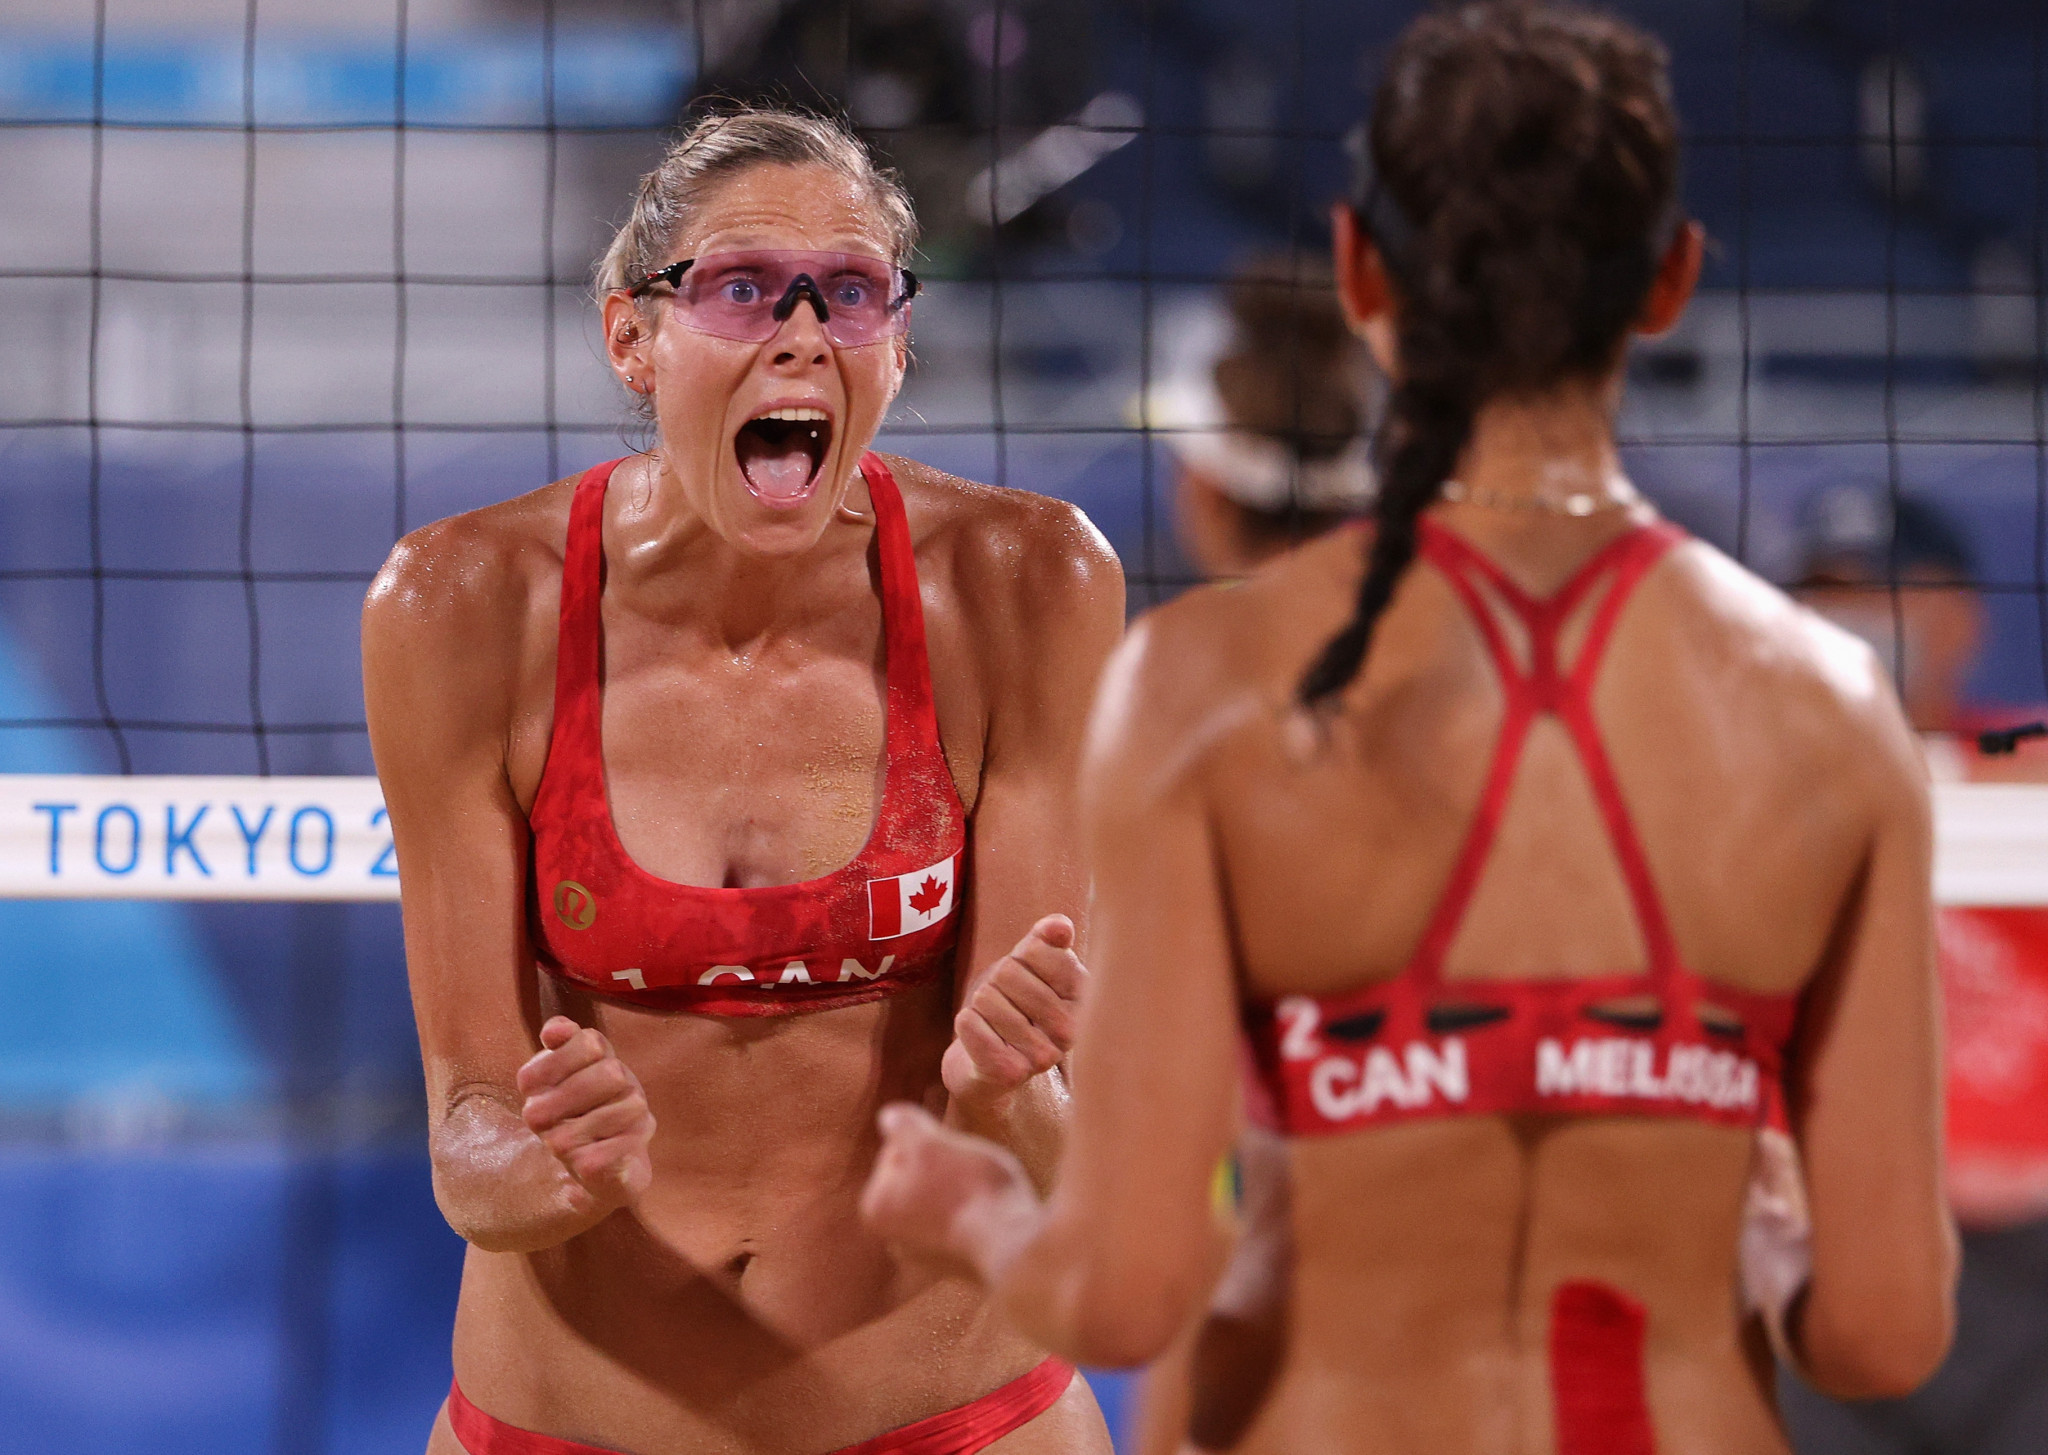 Pavan and Humana-Paredes secure semi-final place at FIVB Beach Volleyball World Tour Finals